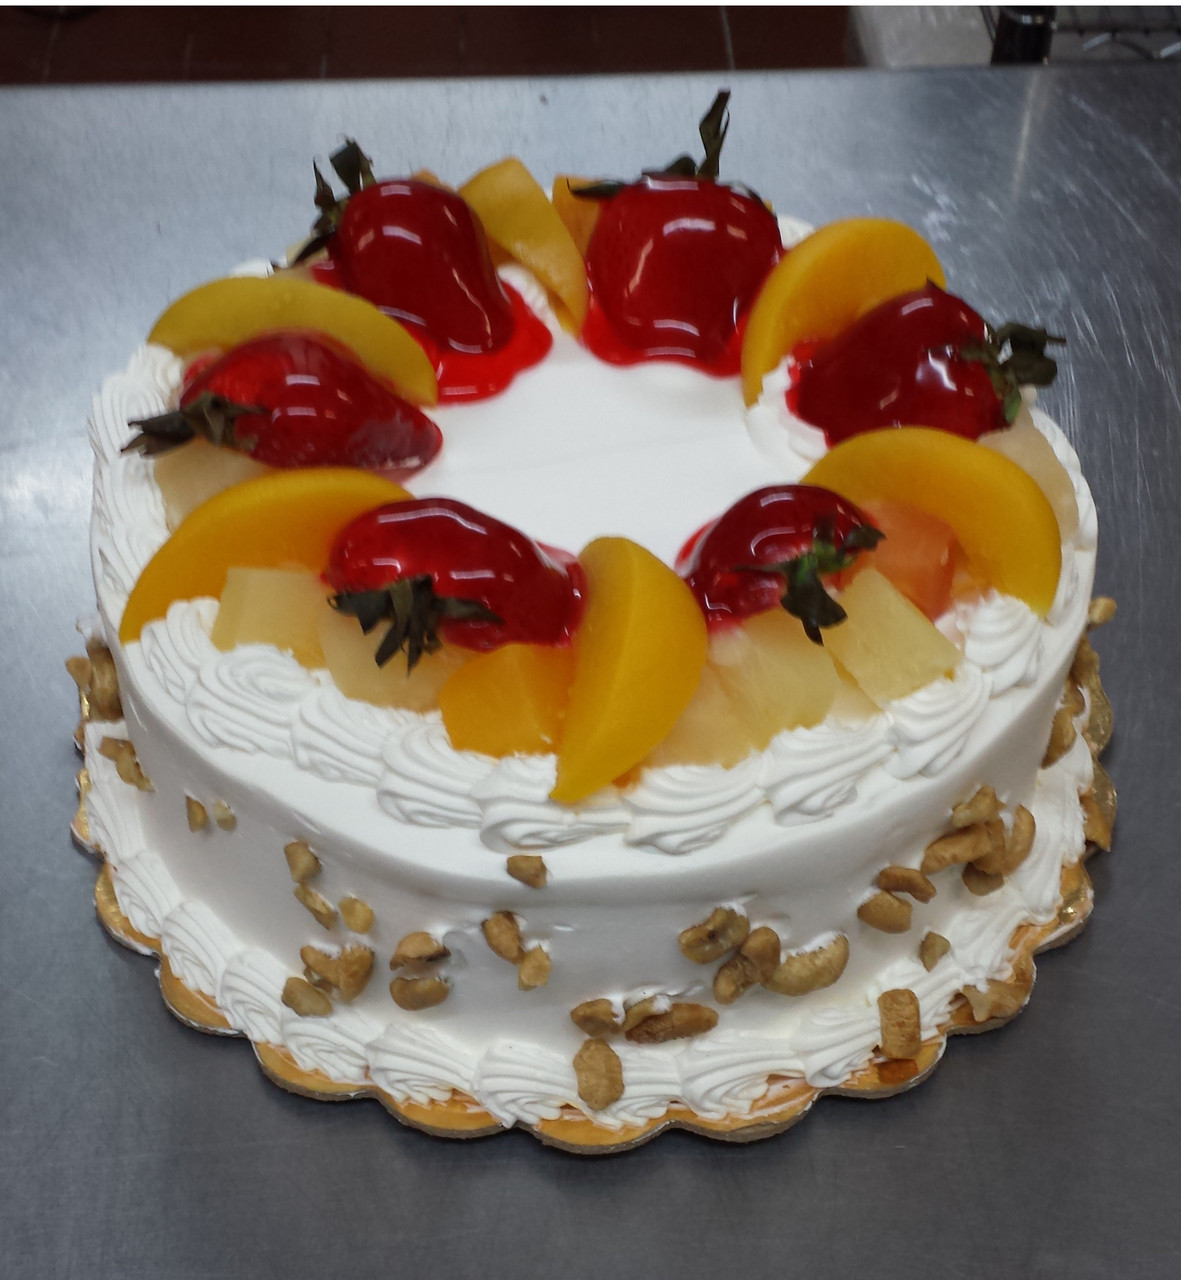 Tres Leches Cake Mixed Fruits Nuts F 22 Lgv Bakery